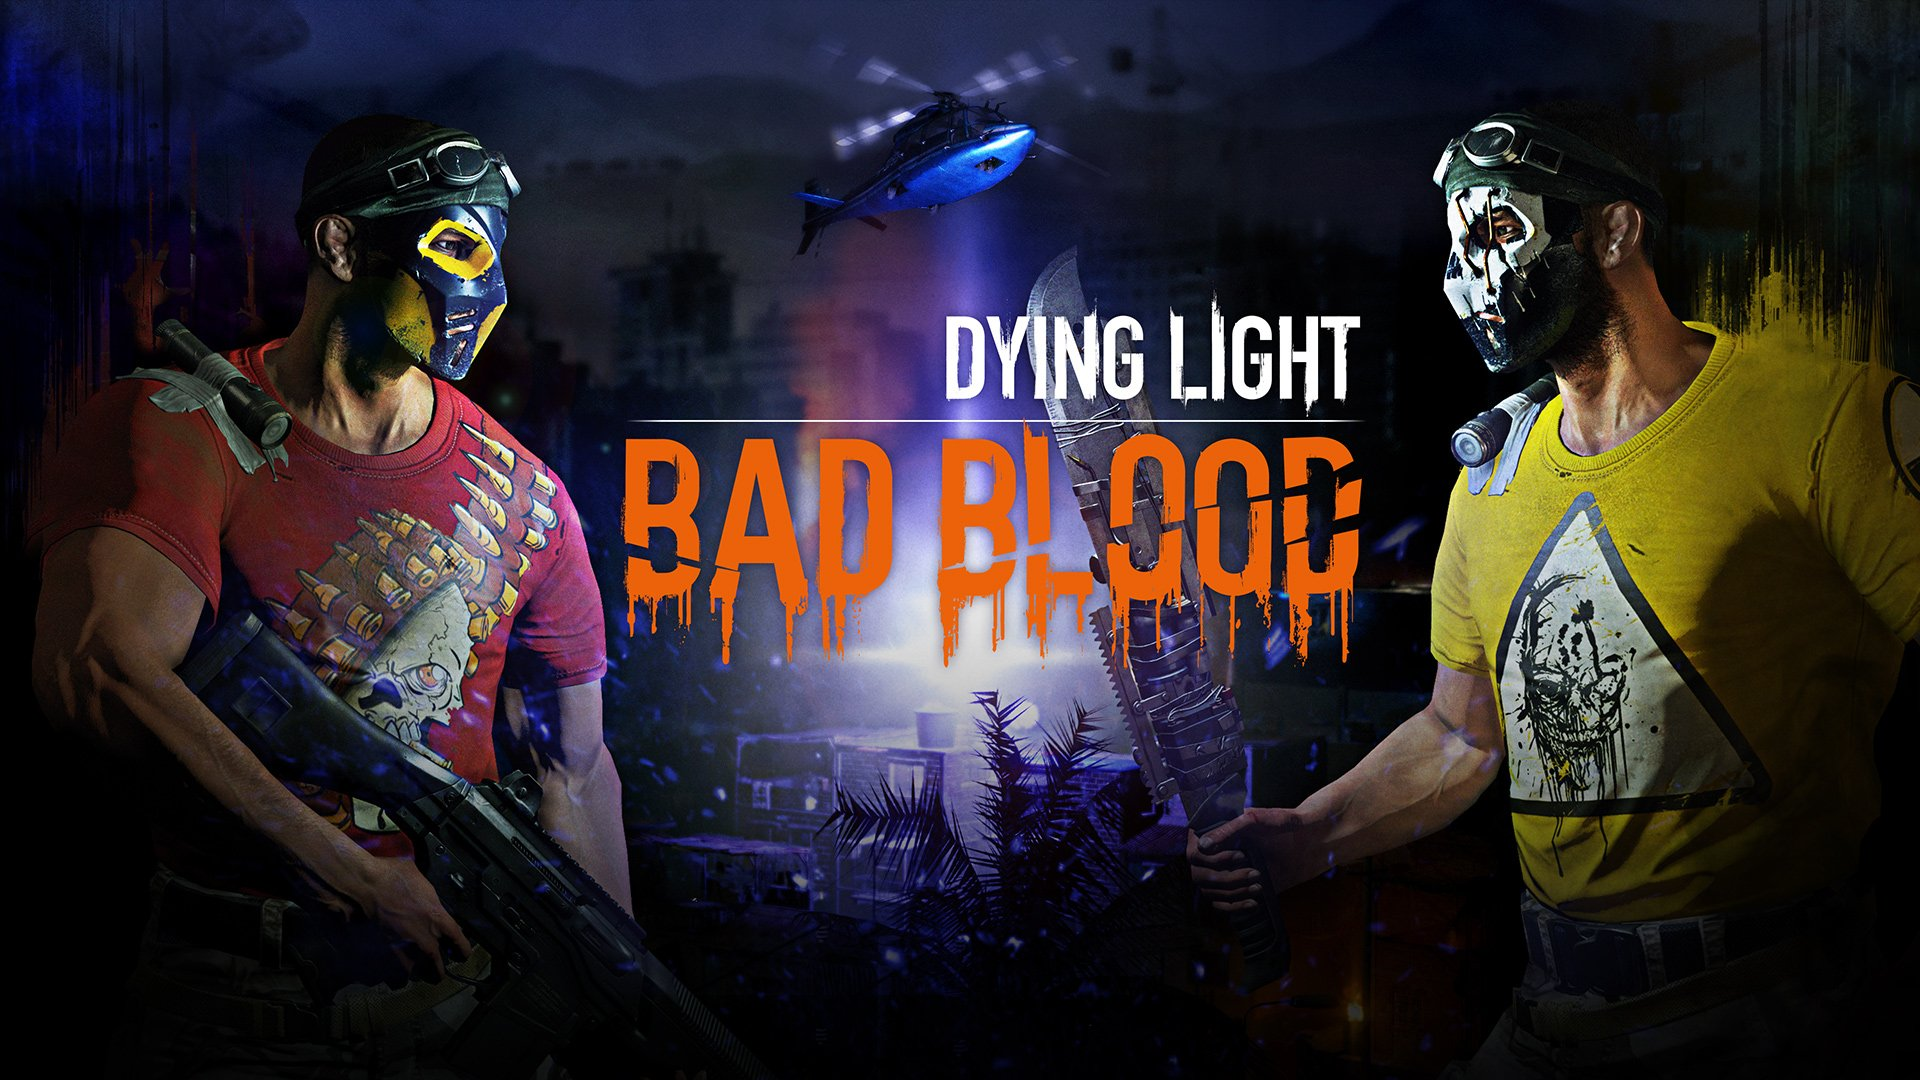 'Dying Light' Developer Announces a PVP Expansion, Bad Blood